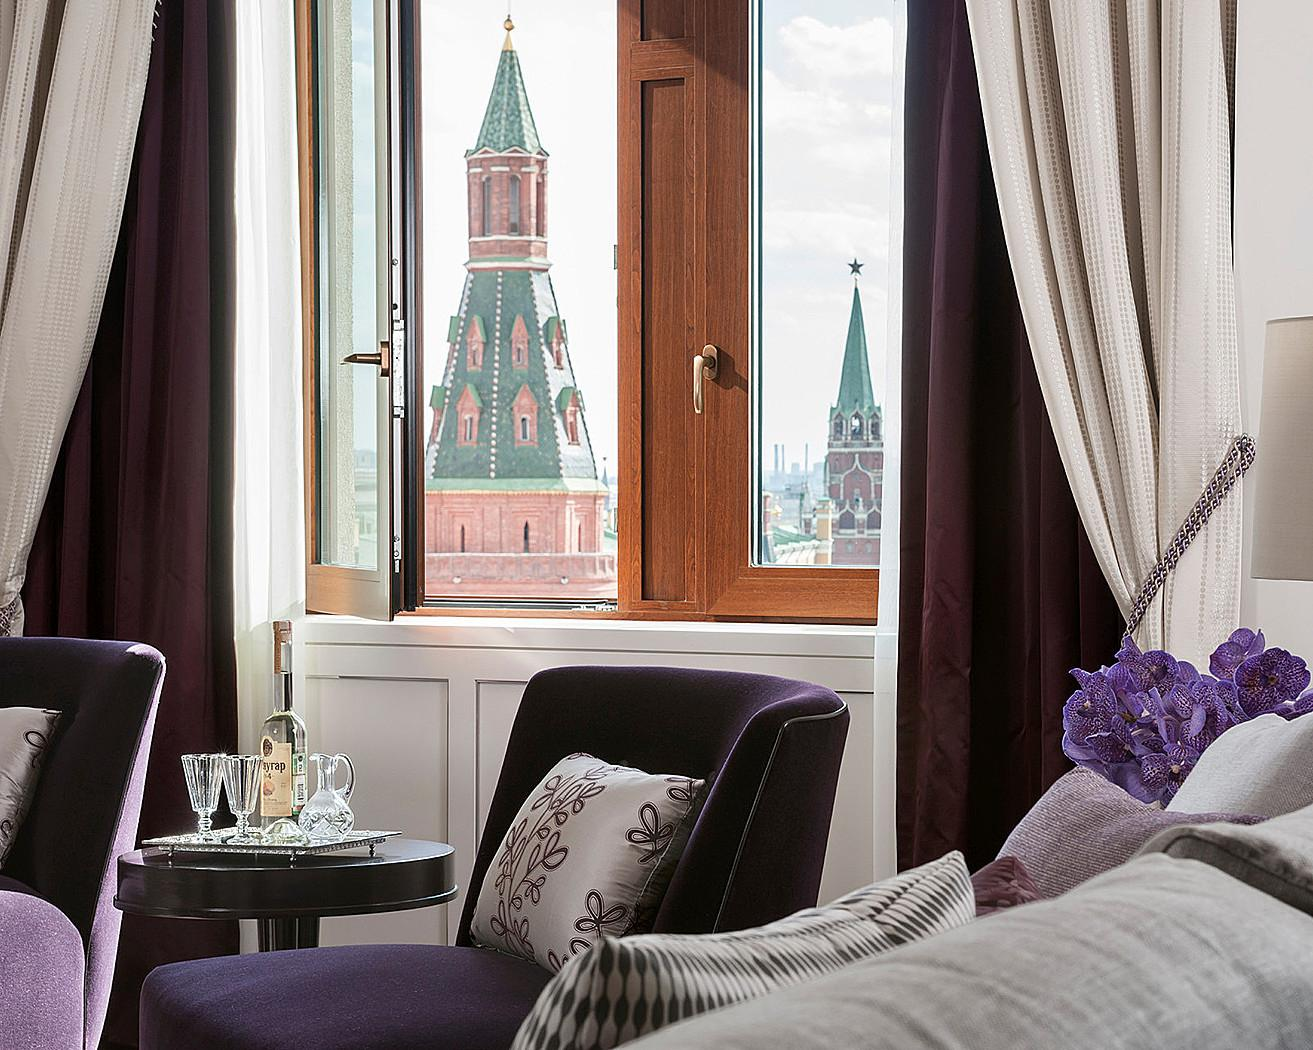 Four Seasons Hotel Moscow, Central